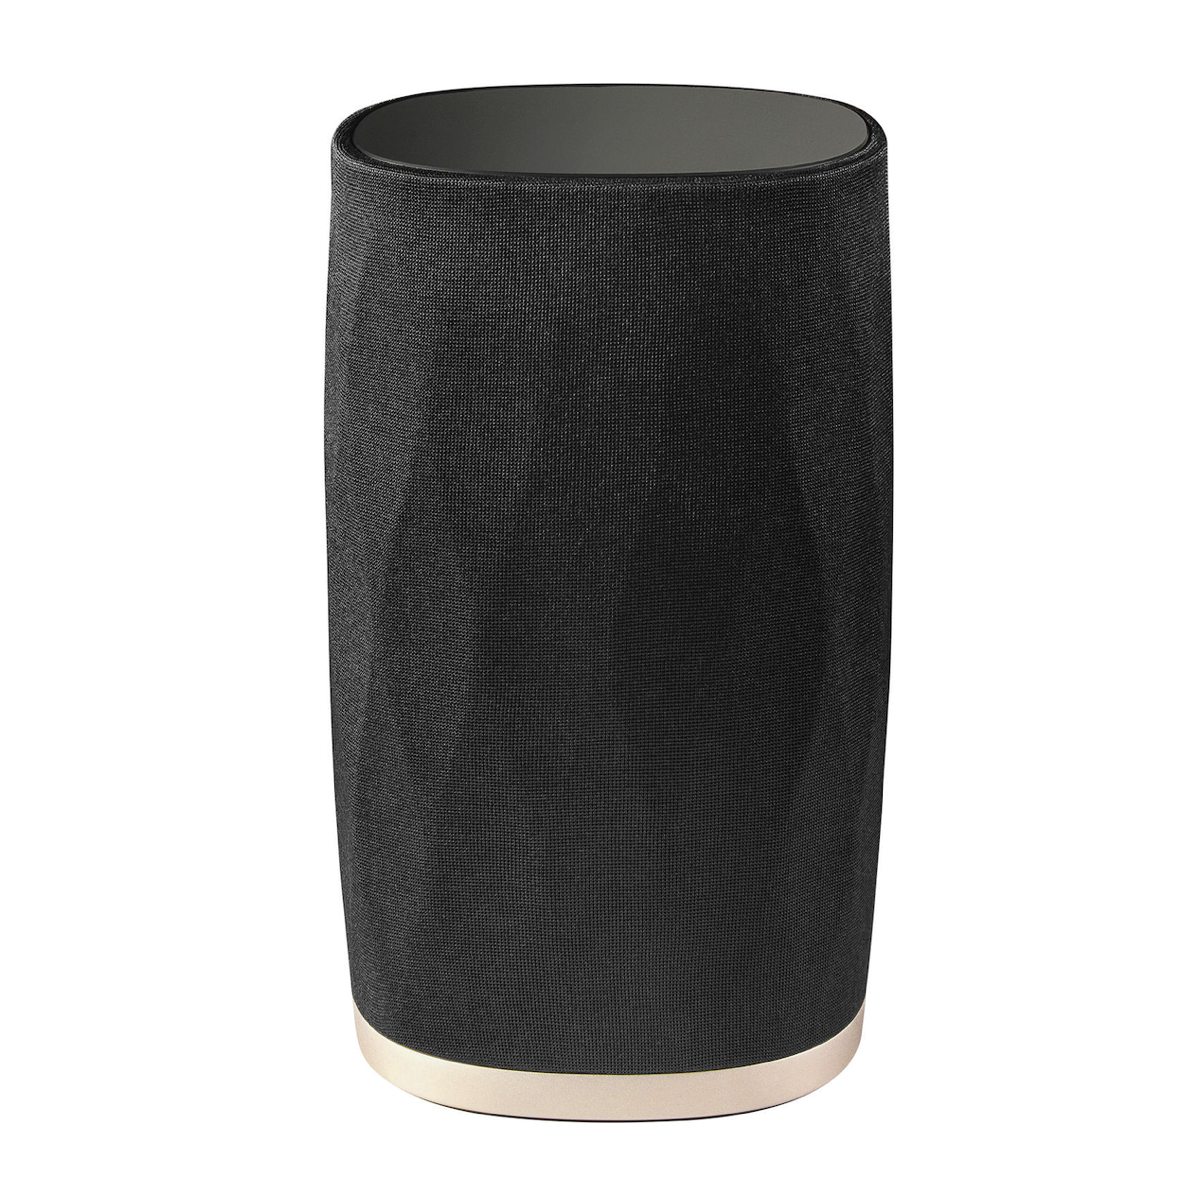 Bowers & Wilkins - Formation Flex, Bowers & Wilkins, Bluetooth Wifi Speaker - Auratech LLC